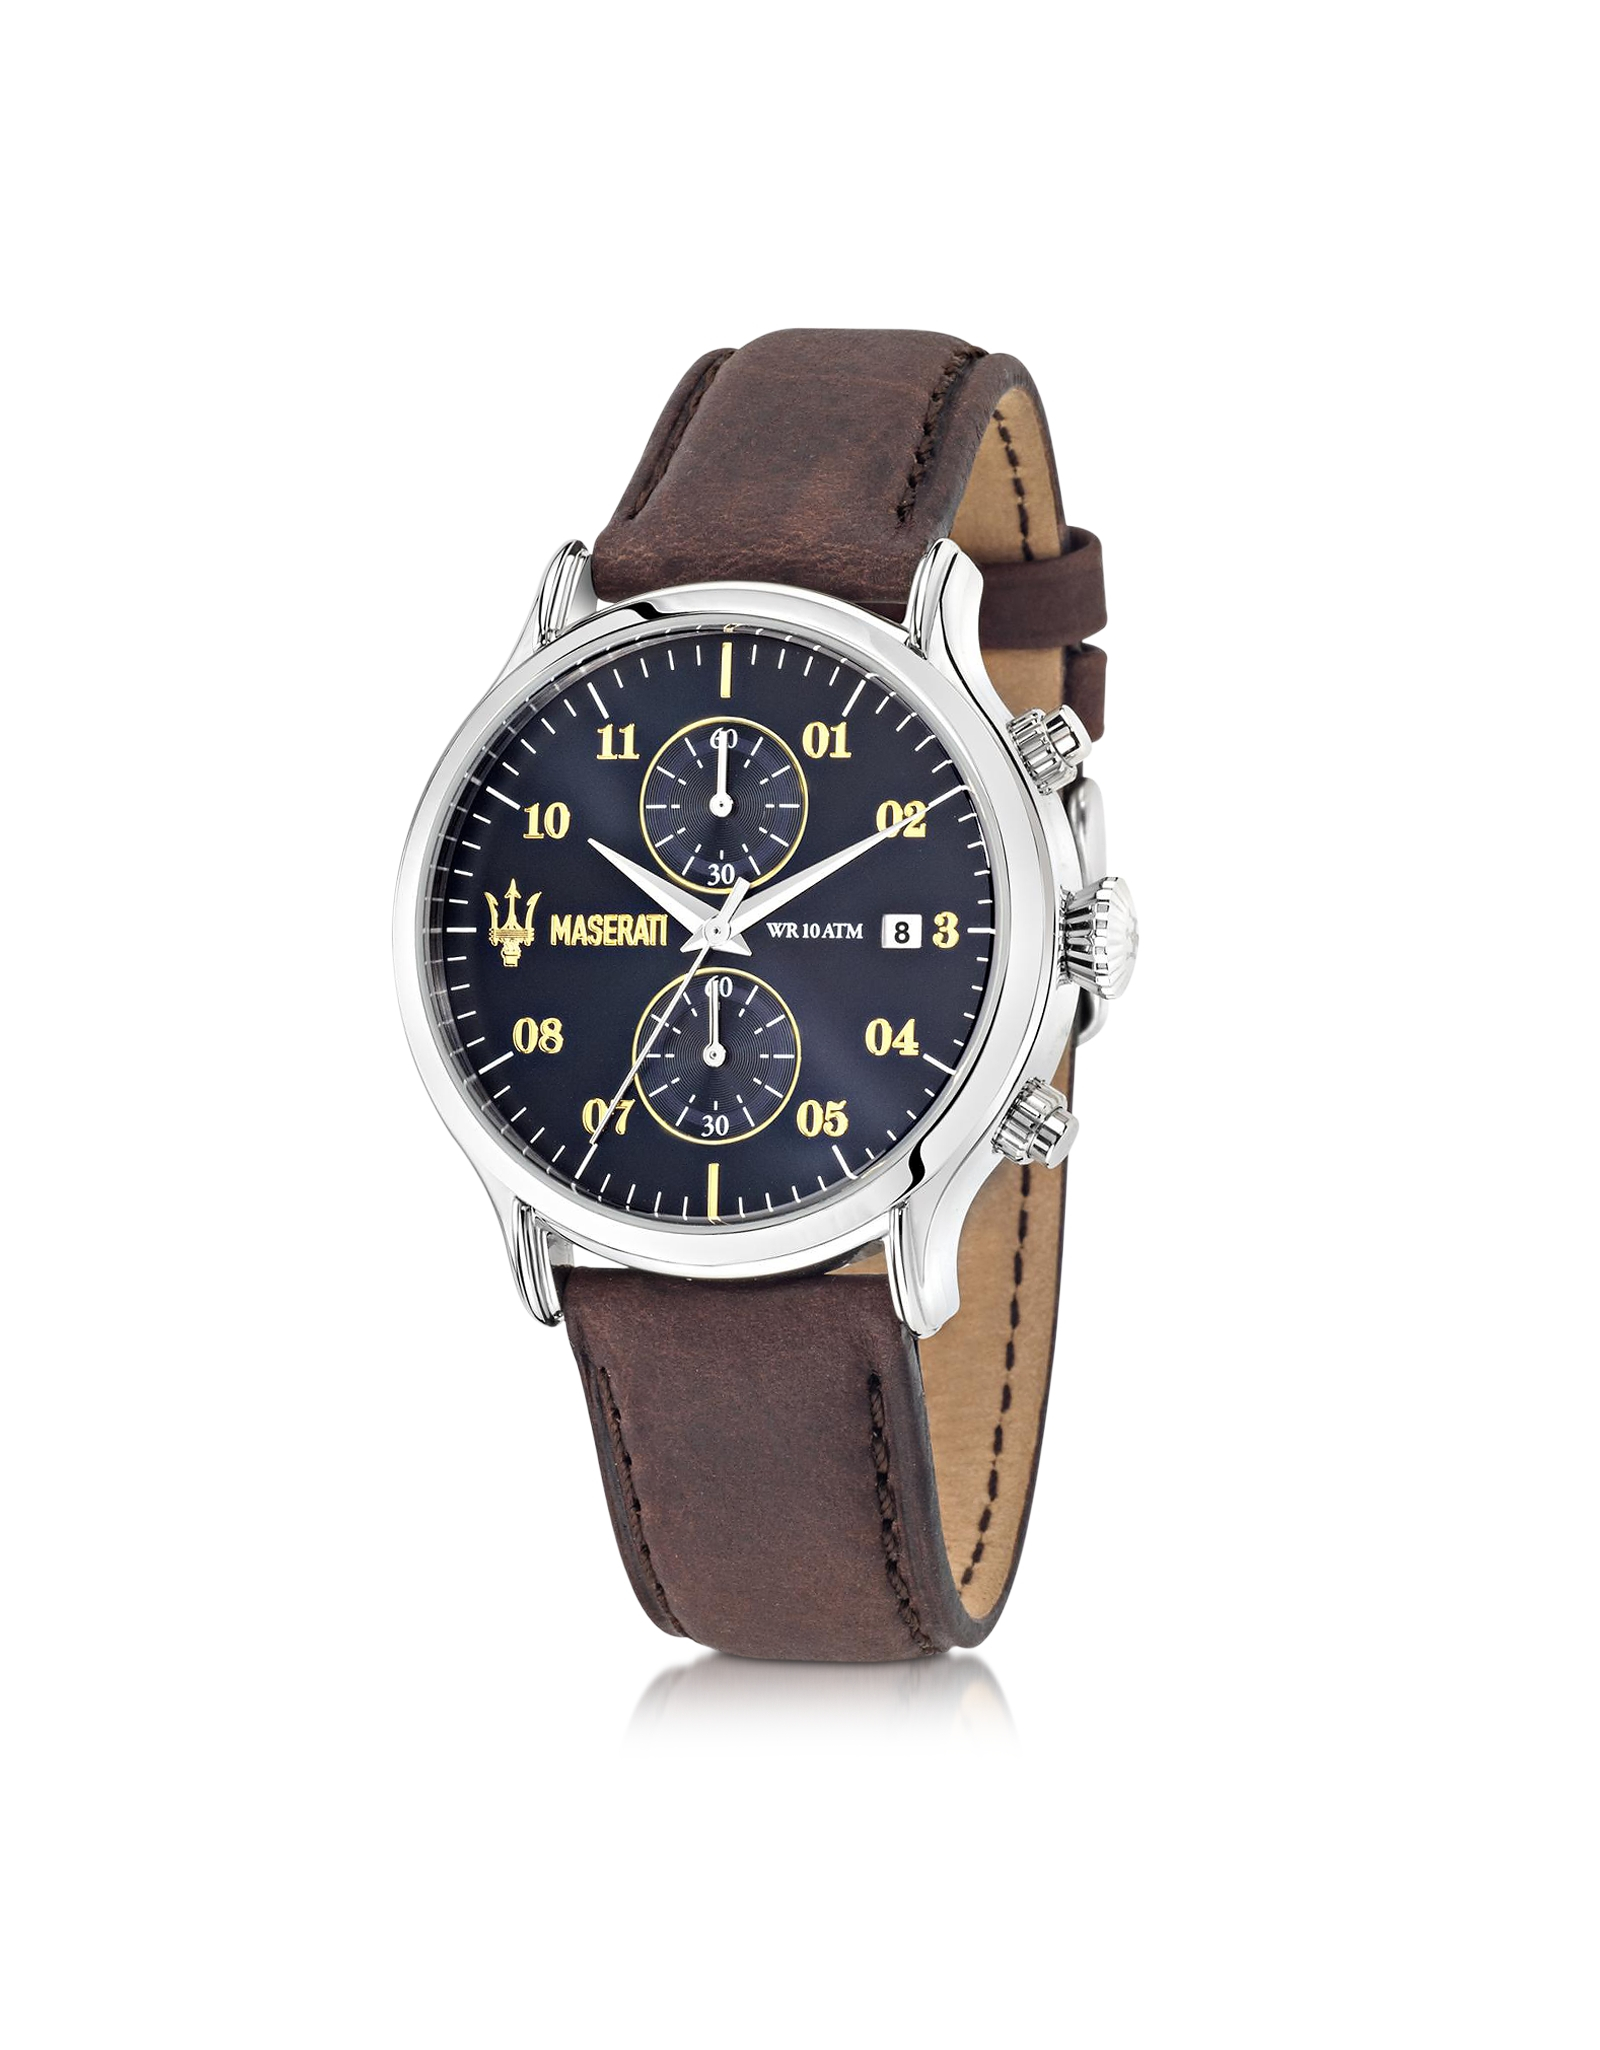 Watch Mens Black Chronograph Ideas Watches Ar1919 Brown Leather